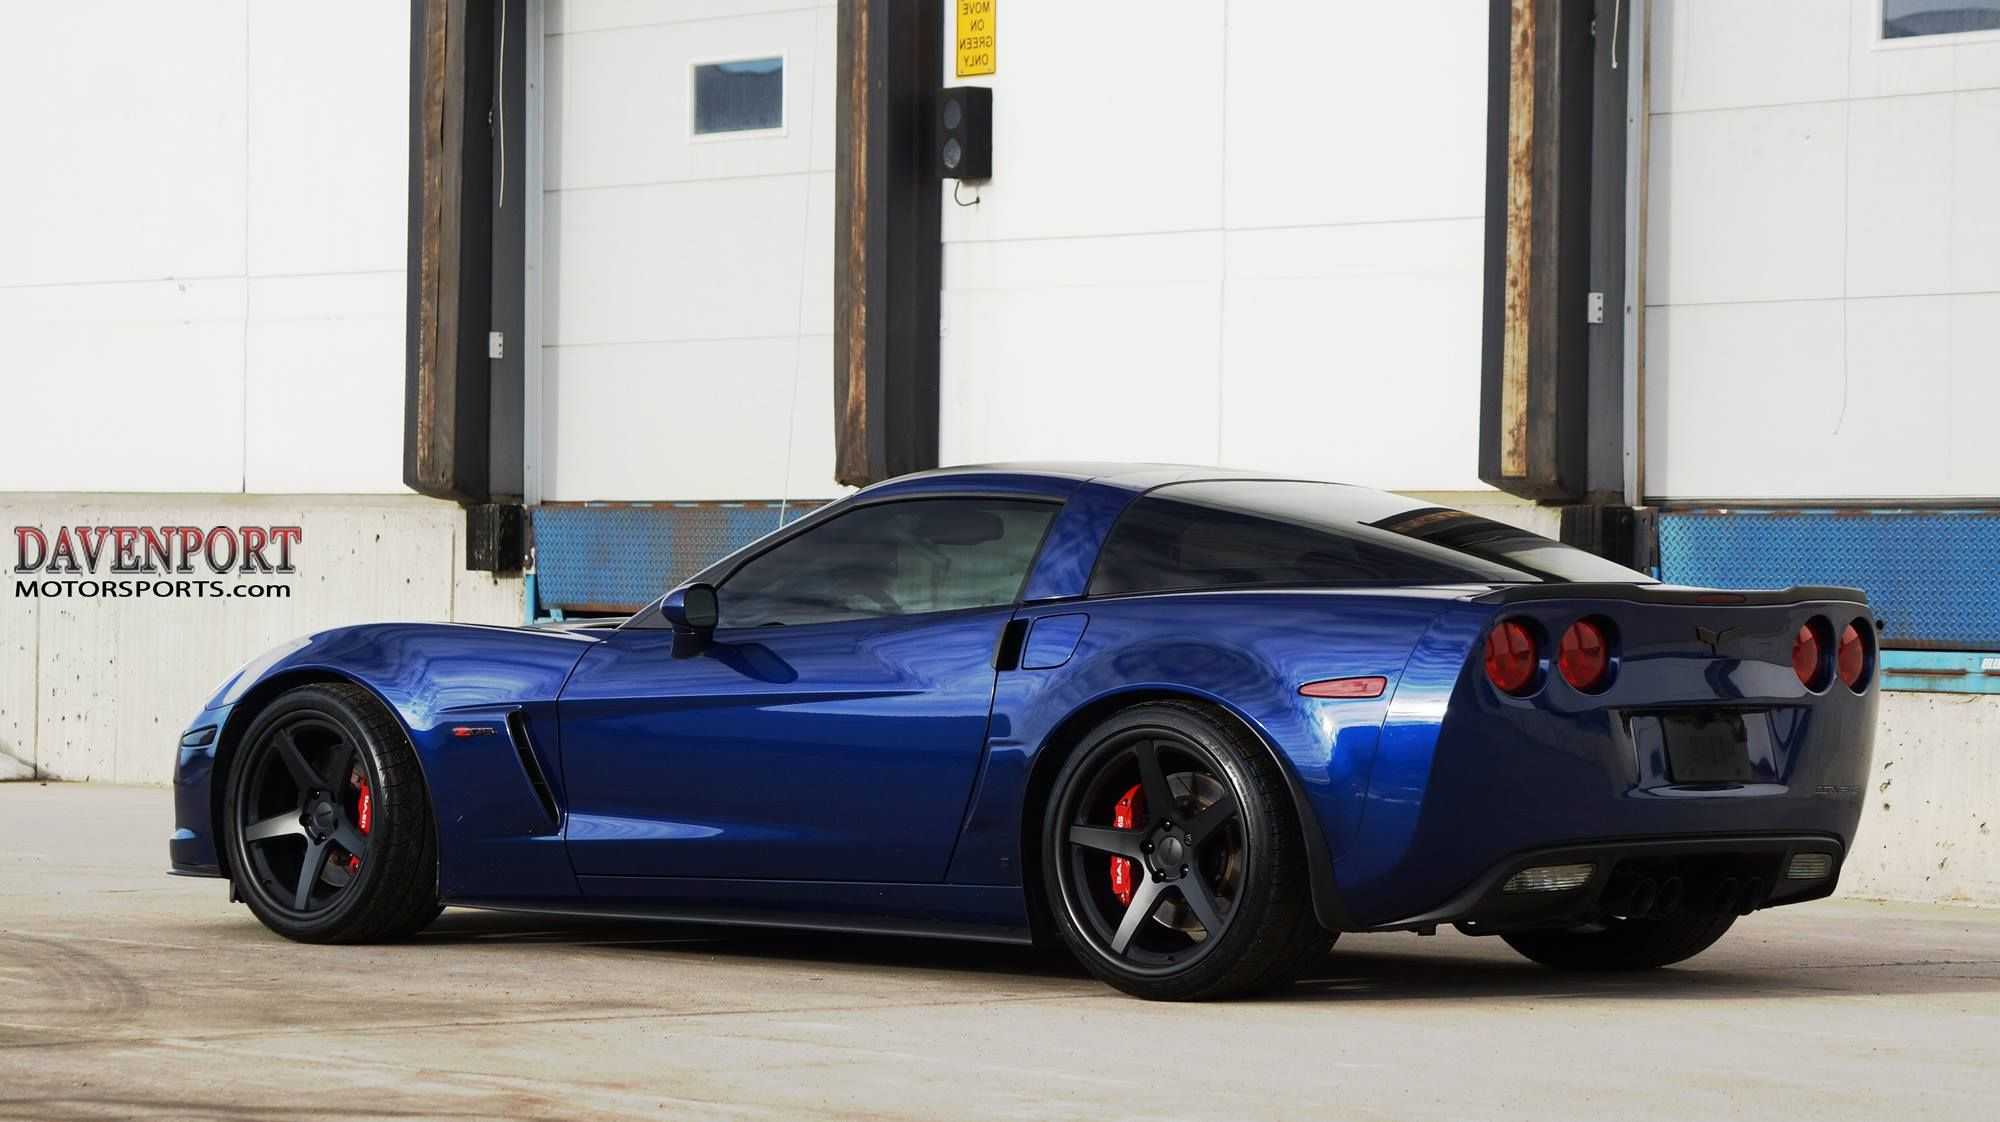 Davenport Motorsports built this C6 Corvette Z06 with their